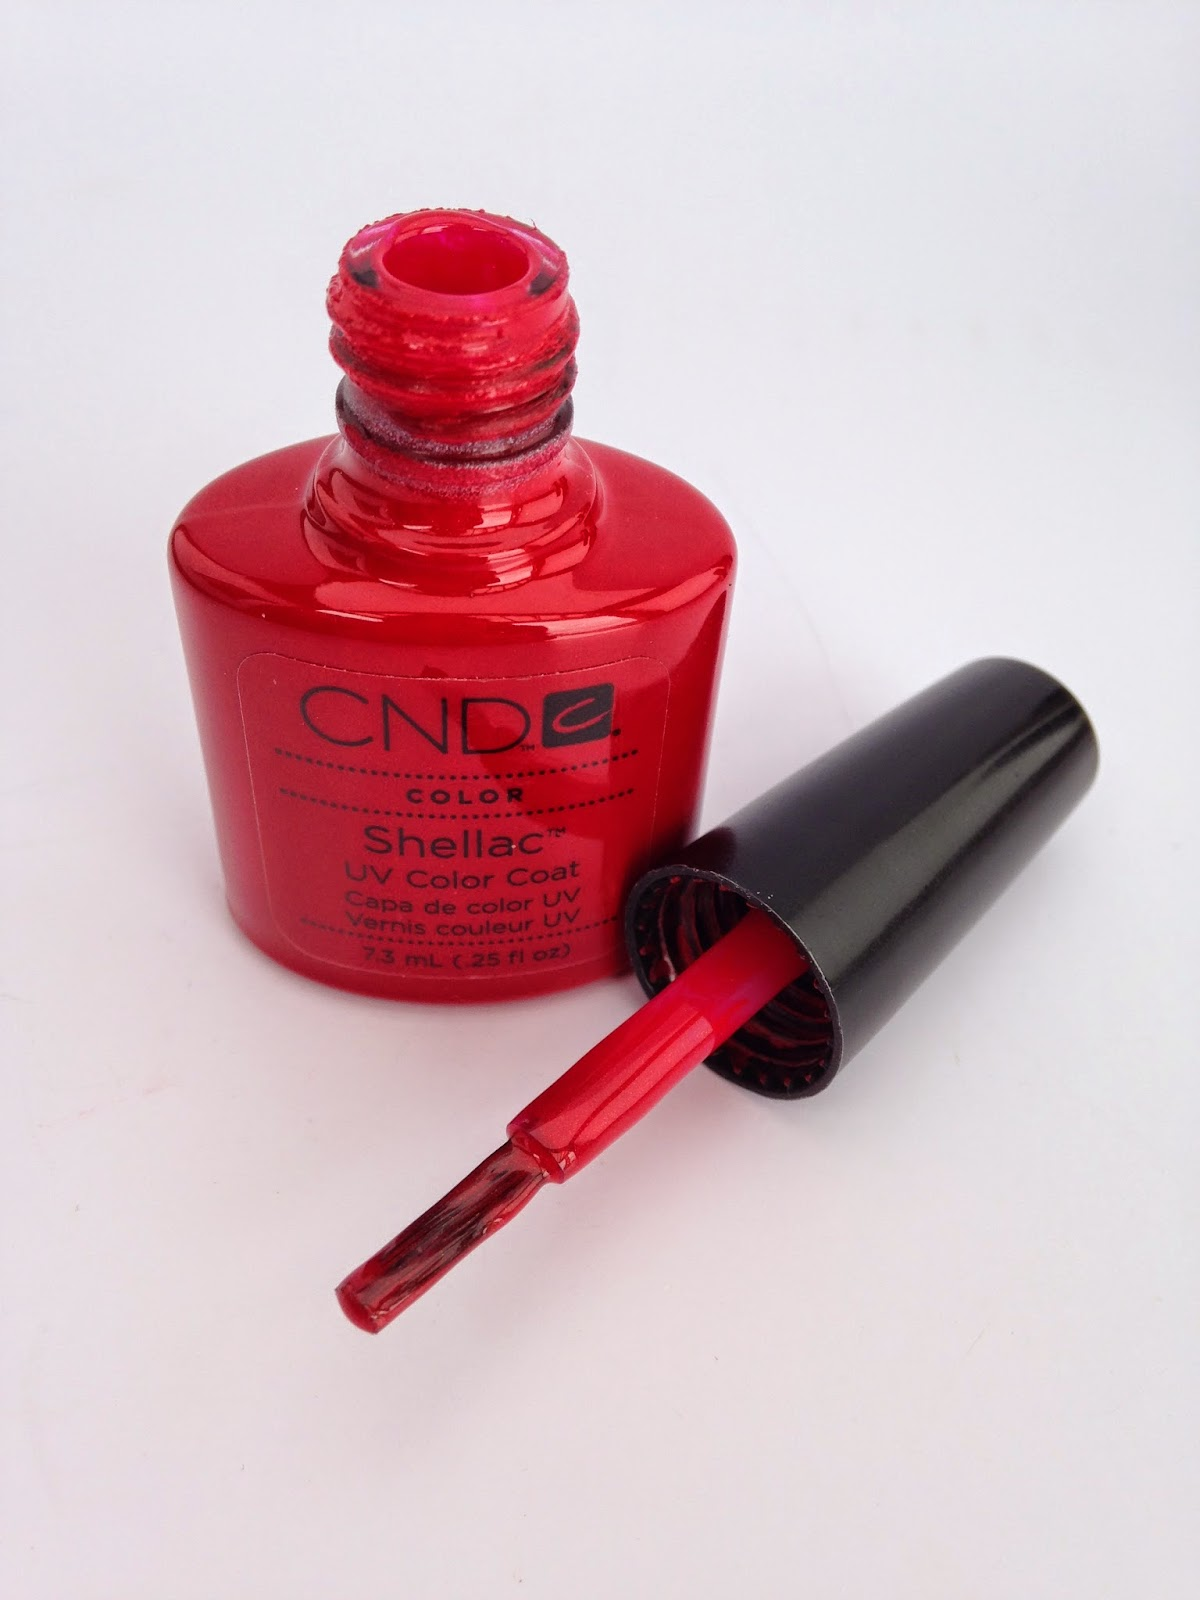 CND Shellac in the color Hollywood